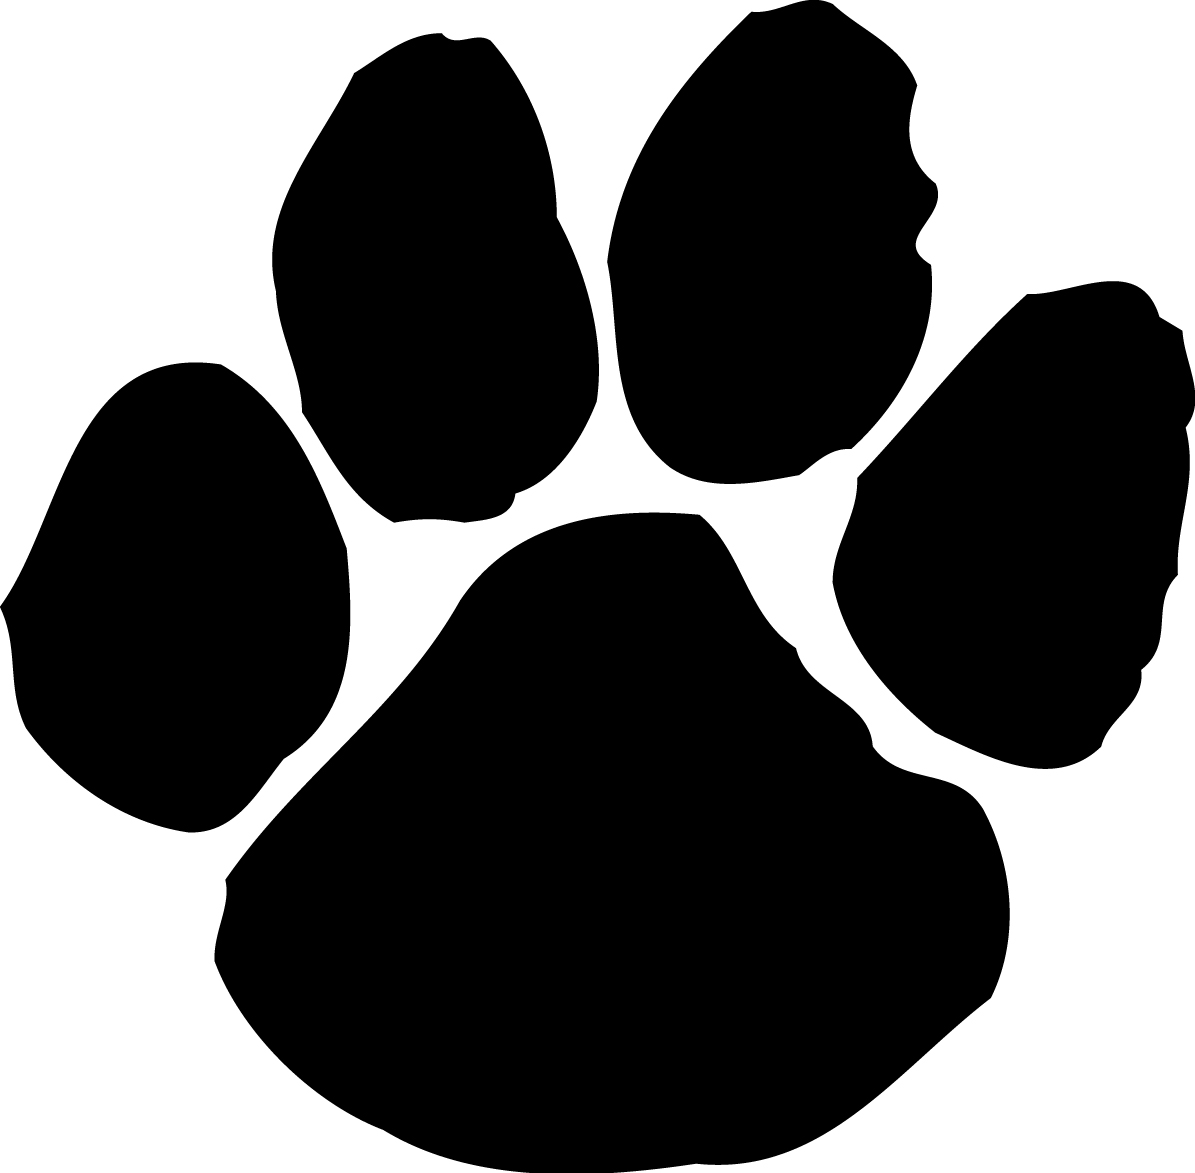 Large Paw Print Think This Could Be Used A Logo Image Or A Marker